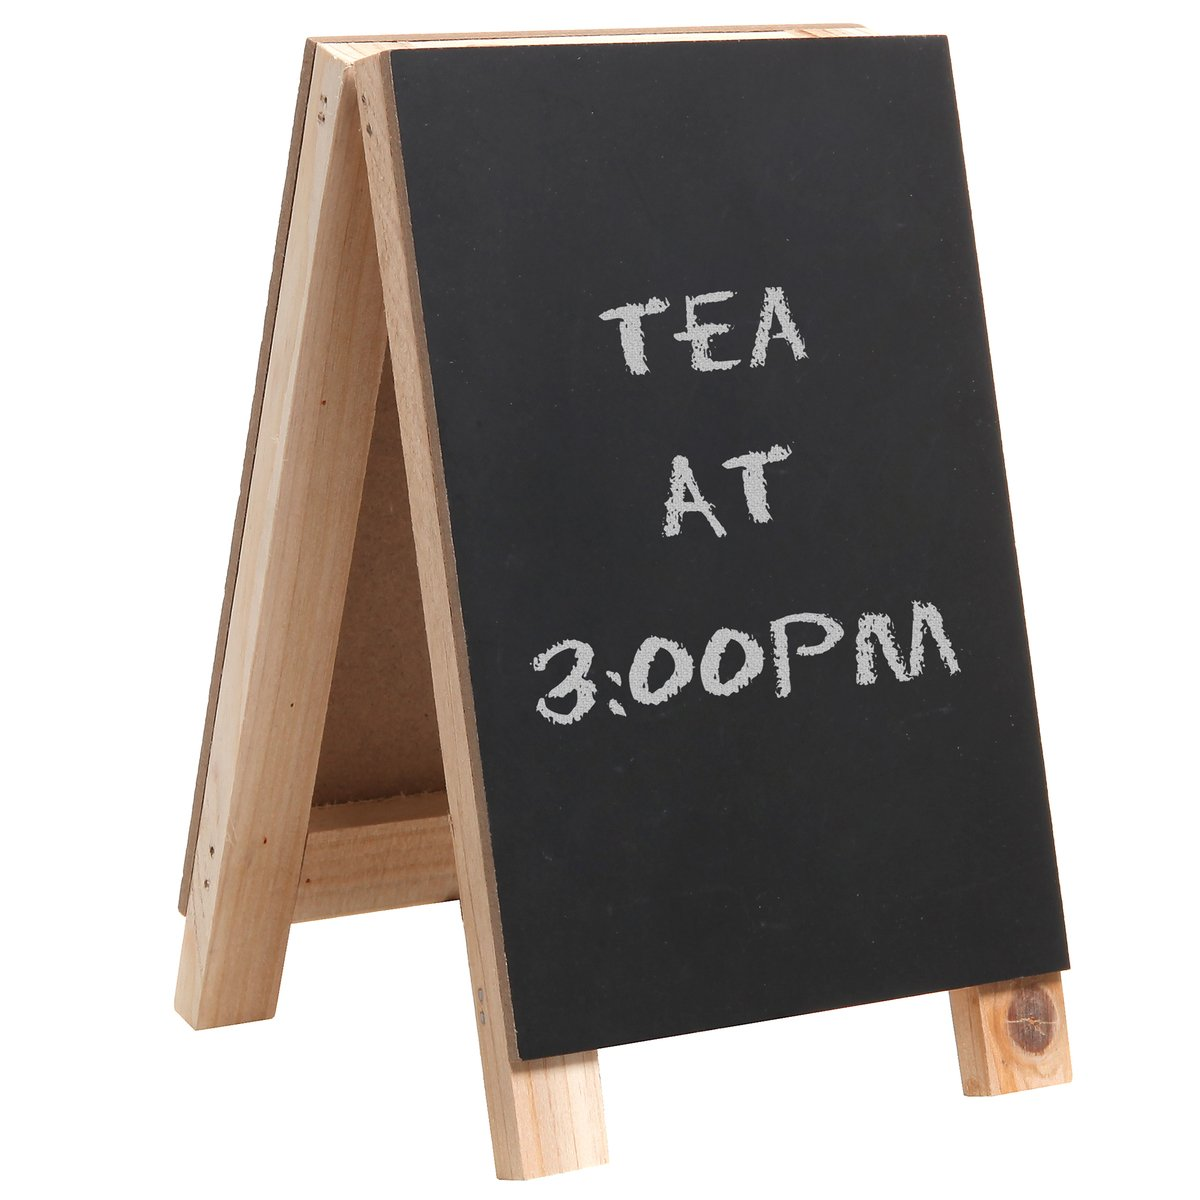 Amazon.com : 8 Inch Decorative Freestanding Tabletop Wooden Easel Chalkboard  Display Sign, Message Board : Office Products